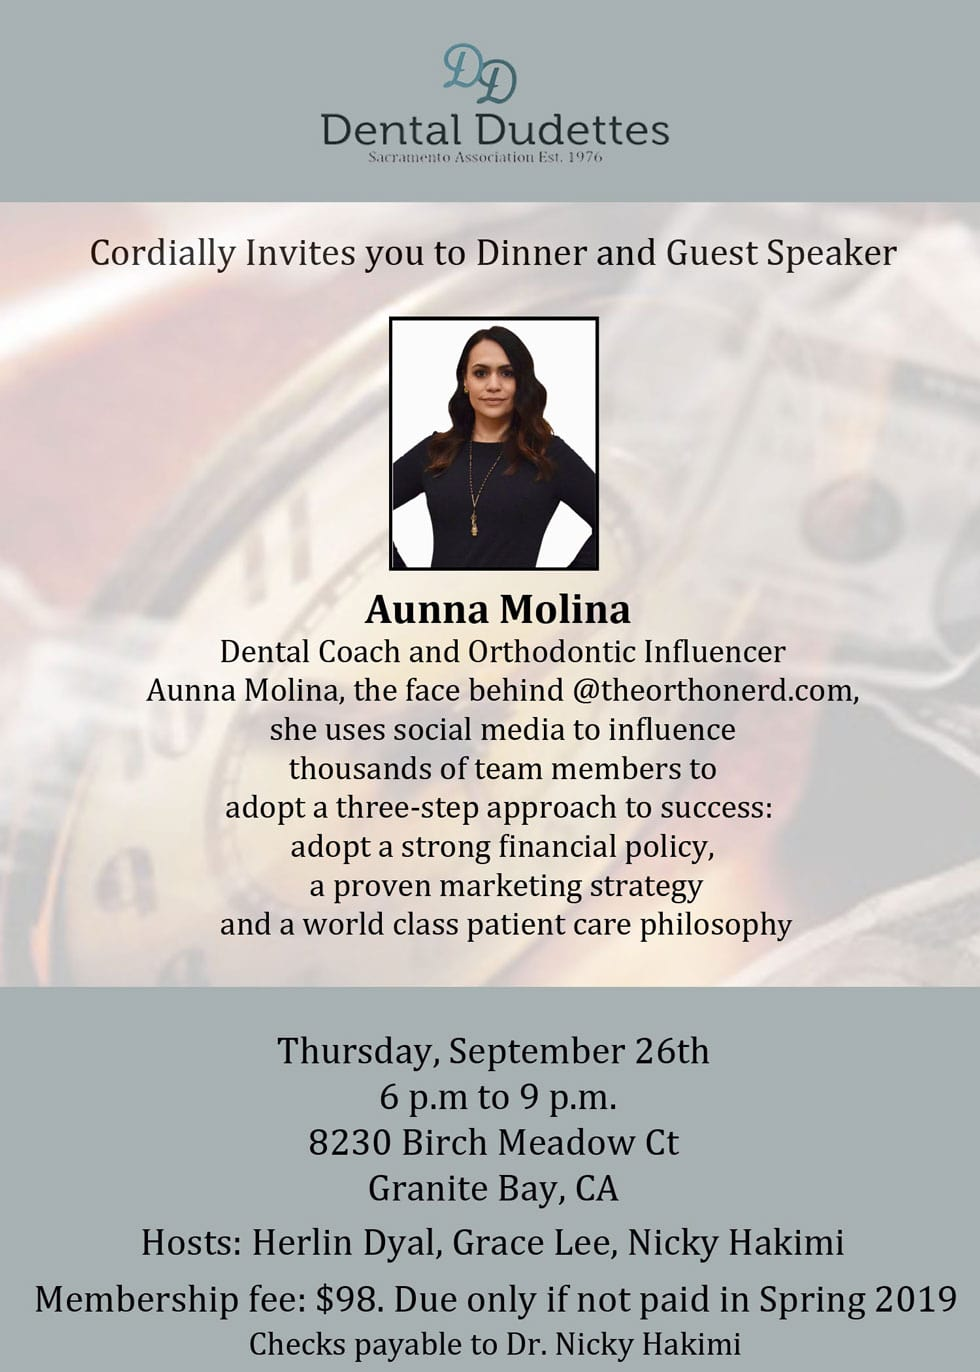 Dental Dudettes upcoming event with Aunna Molina - Dental Coach